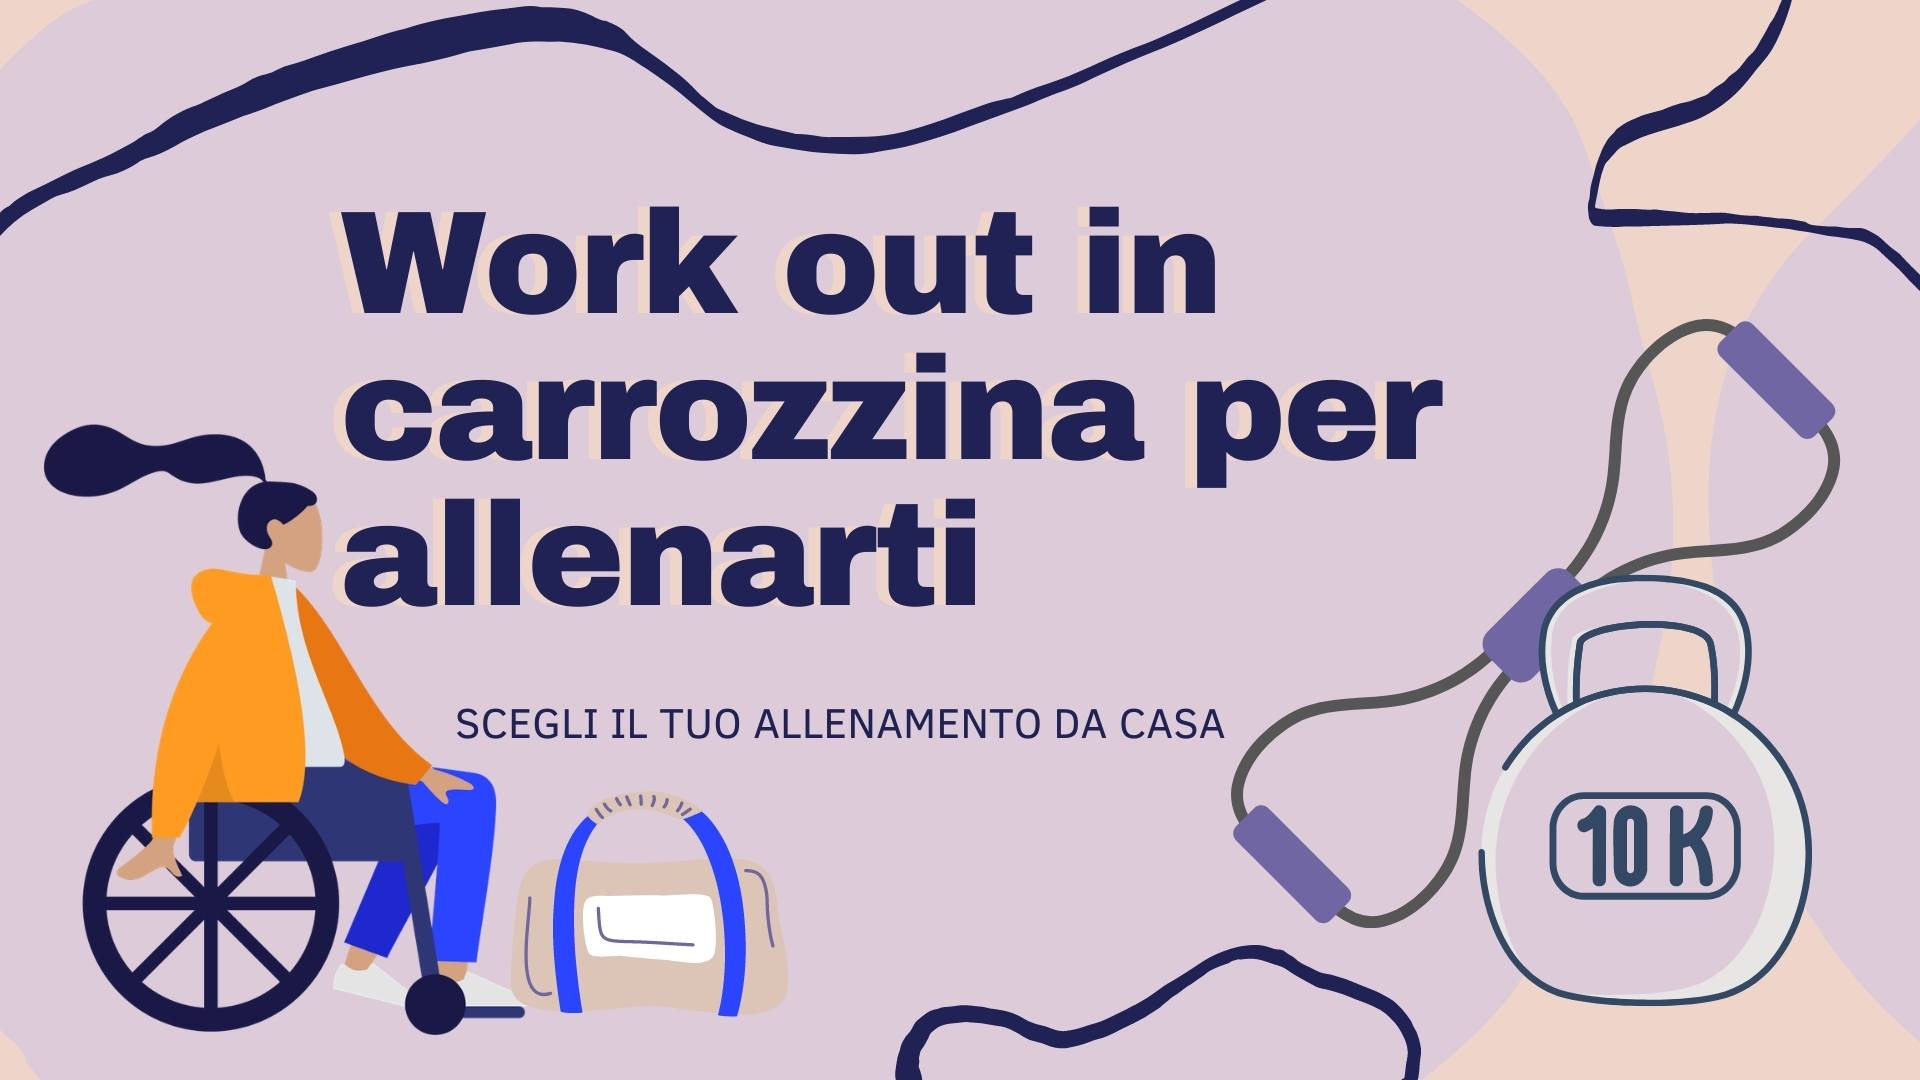 Work out in carrozzina per allenarti